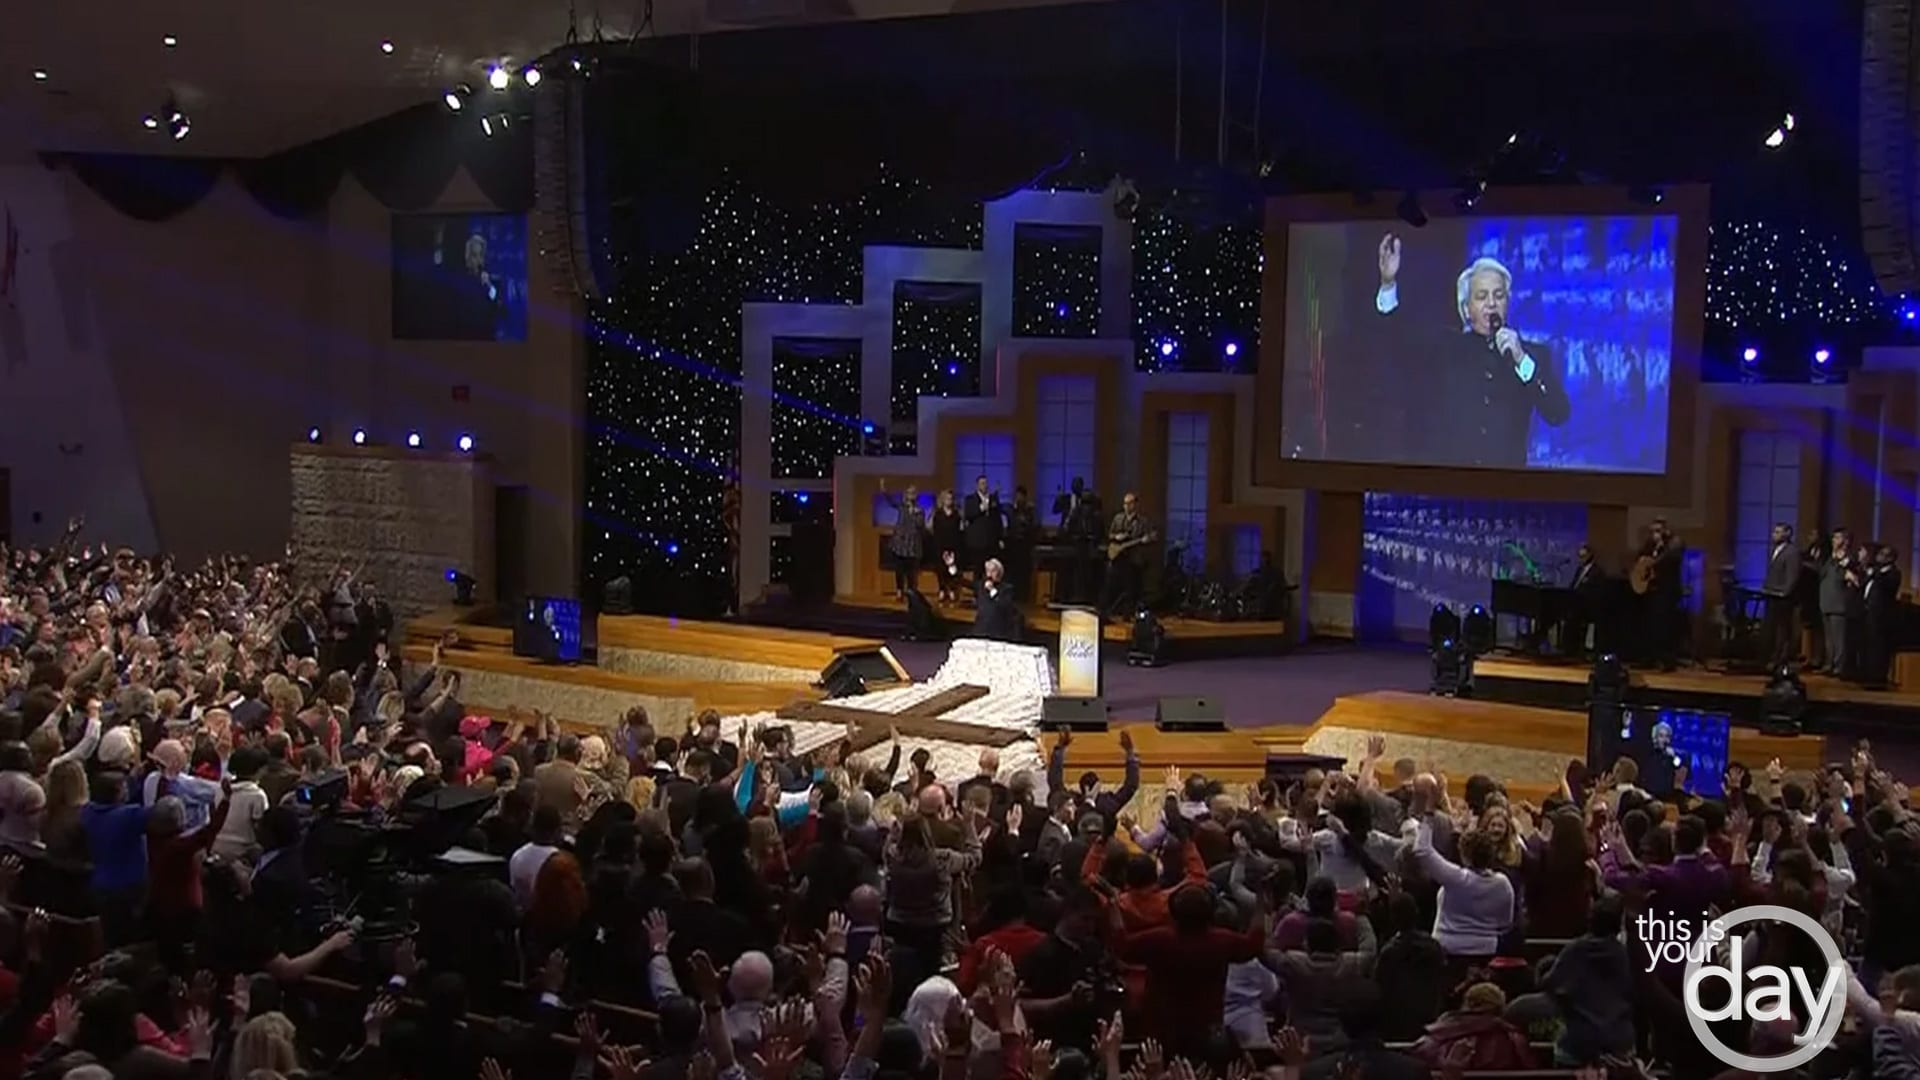 Turn Your Eyes Upon Jesus - This Is Your Day - Benny Hinn Ministries.